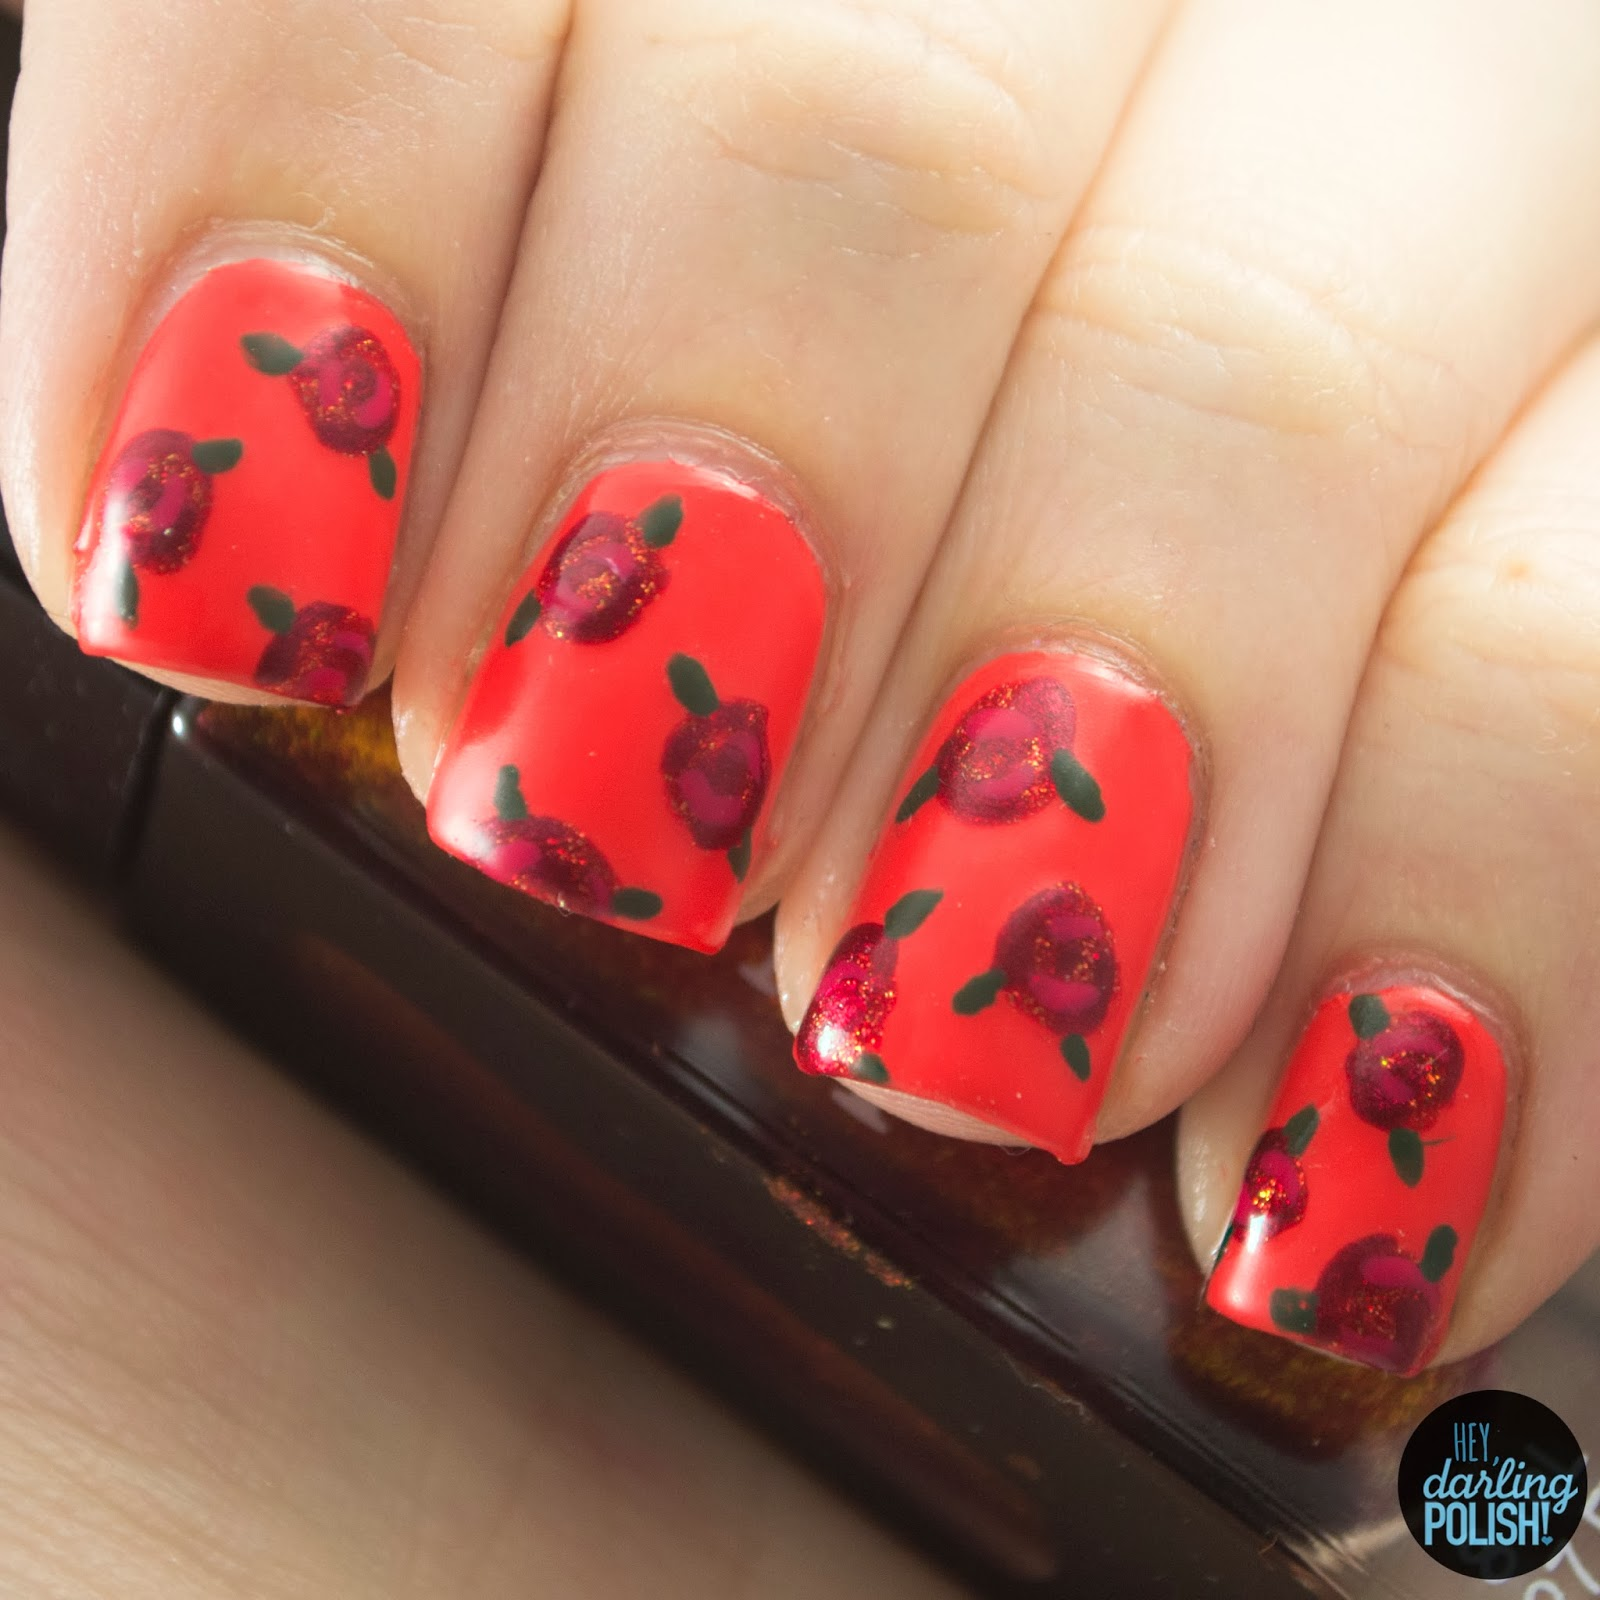 nails, nail art, nail polish, polish, flowers, roses, theme buffet, hey darling polish, red, orange